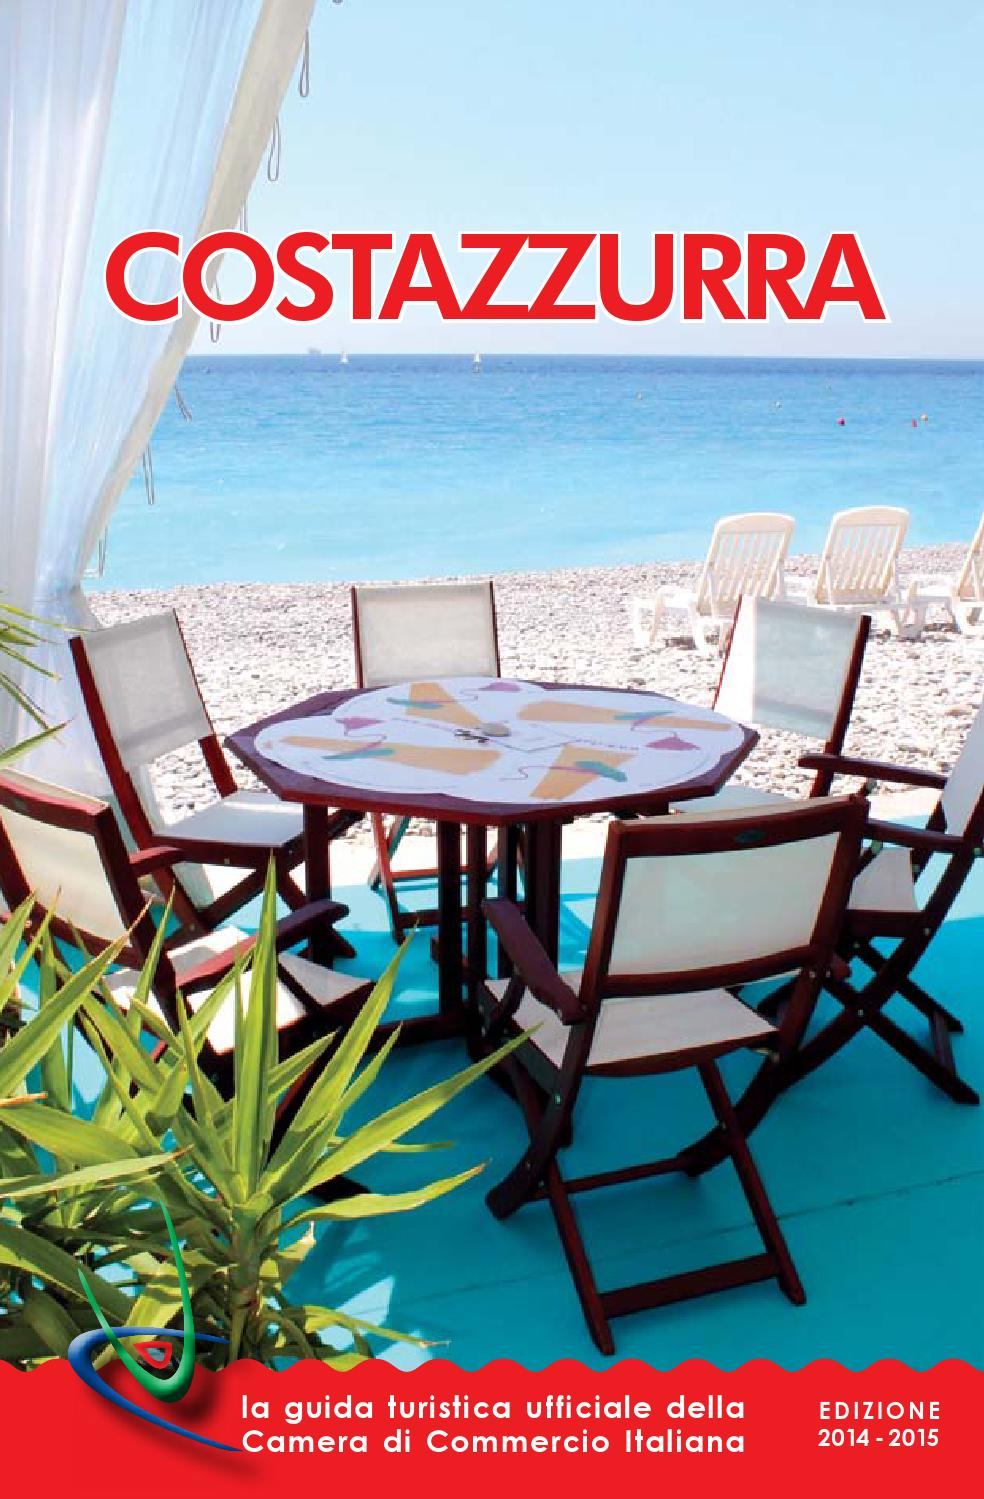 Guida turistica costazzurra 2014 by chambre de commerce - Chambre de commerce italienne de nice ...